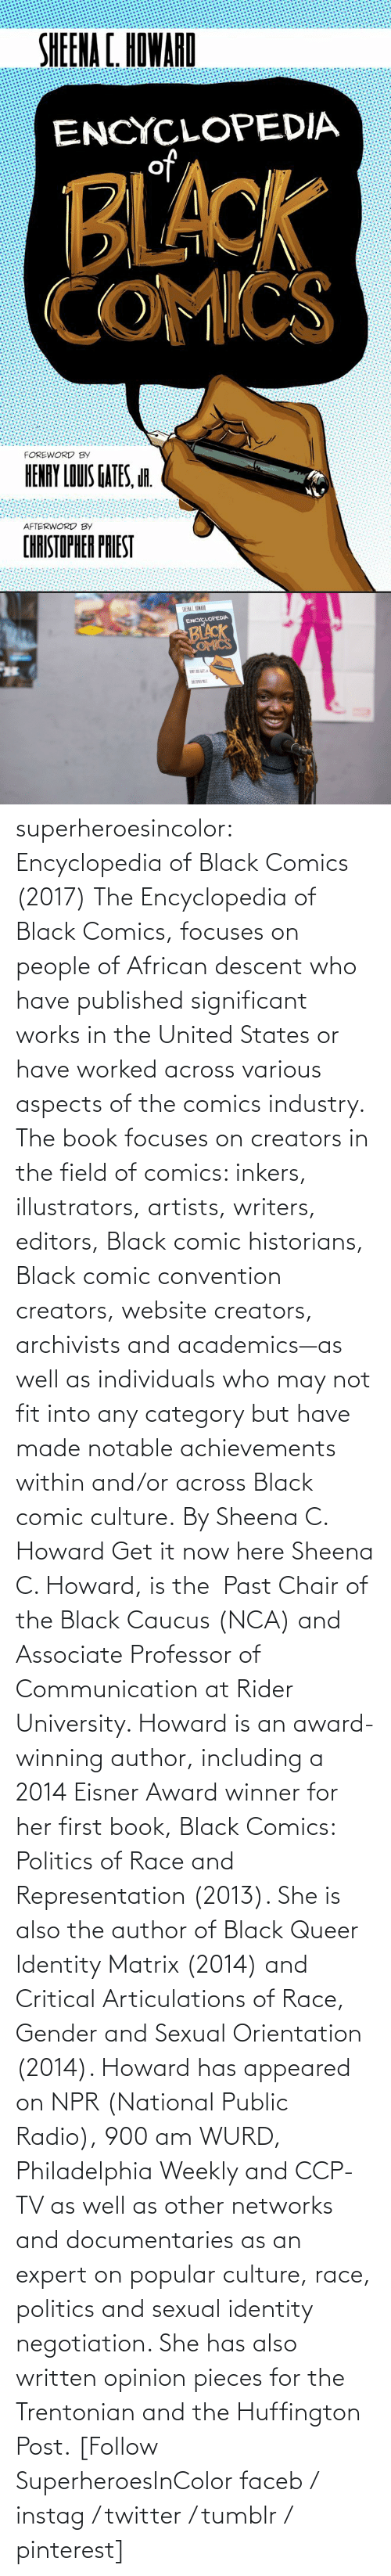 made: superheroesincolor: Encyclopedia of Black Comics (2017) The Encyclopedia of Black Comics, focuses on people of African descent who have published significant works in the United States or have worked across various aspects of the comics industry.  The book focuses on creators in the field of comics: inkers, illustrators, artists, writers, editors, Black comic historians, Black comic convention creators, website creators, archivists and academics—as well as individuals who may not fit into any category but have made notable achievements within and/or across Black comic culture. By Sheena C. Howard Get it now here  Sheena C. Howard, is the  Past Chair of the Black Caucus (NCA) and Associate Professor of Communication at Rider University. Howard is an award-winning author, including a 2014 Eisner Award winner for her first book, Black Comics: Politics of Race and Representation (2013). She is also the author of Black Queer Identity Matrix (2014) and Critical Articulations of Race, Gender and Sexual Orientation (2014). Howard has appeared on NPR (National Public Radio), 900 am WURD, Philadelphia Weekly and CCP-TV as well as other networks and documentaries as an expert on popular culture, race, politics and sexual identity negotiation. She has also written opinion pieces for the Trentonian and the Huffington Post.   [Follow SuperheroesInColor faceb / instag / twitter / tumblr / pinterest]